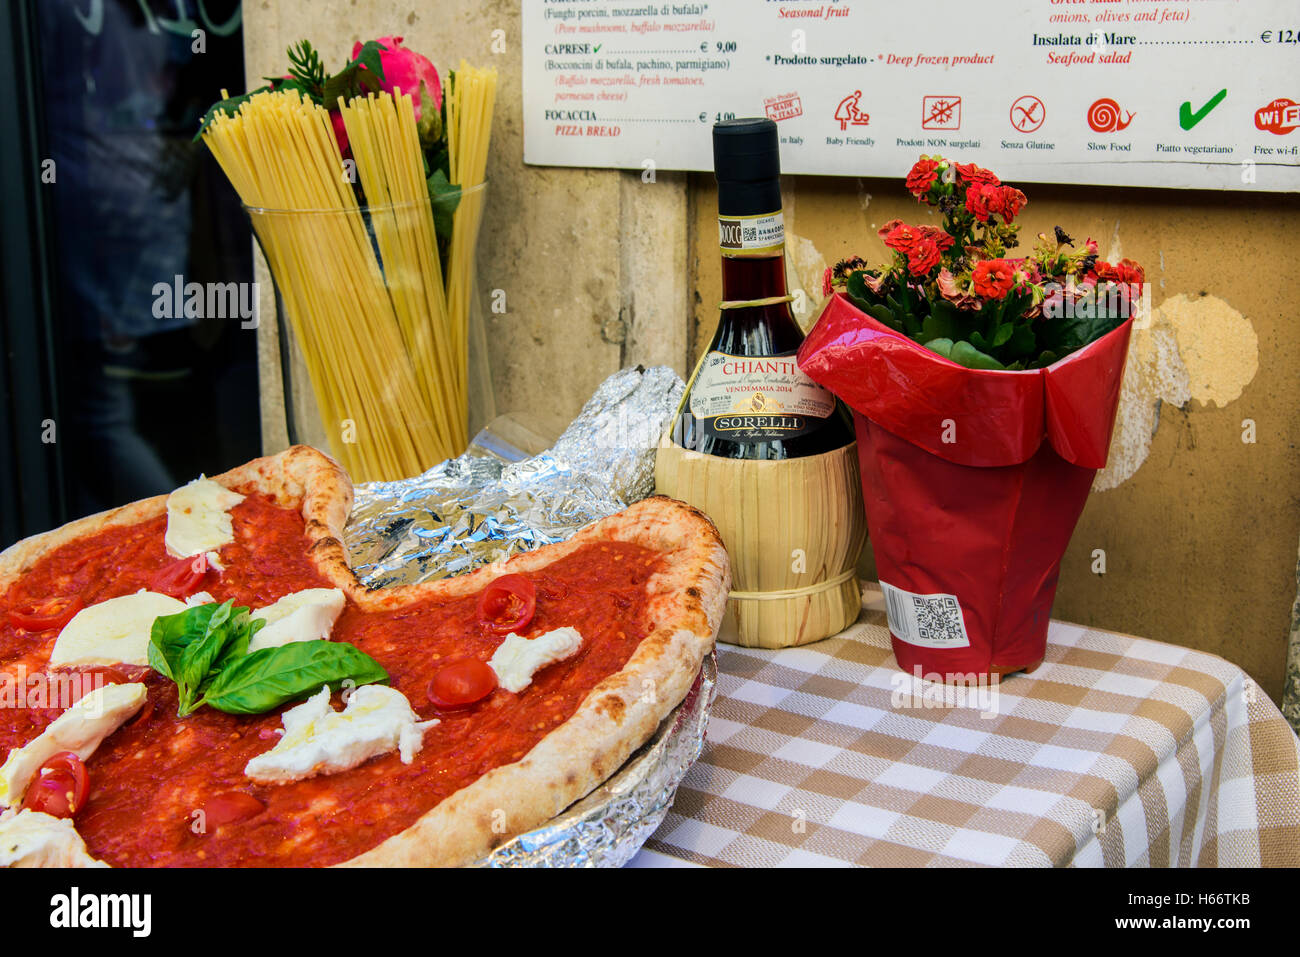 Pizza margherita, spaghetti and flask of Chianti red wine on a table outside a restaurant in Rome, Lazio, Italy - Stock Image